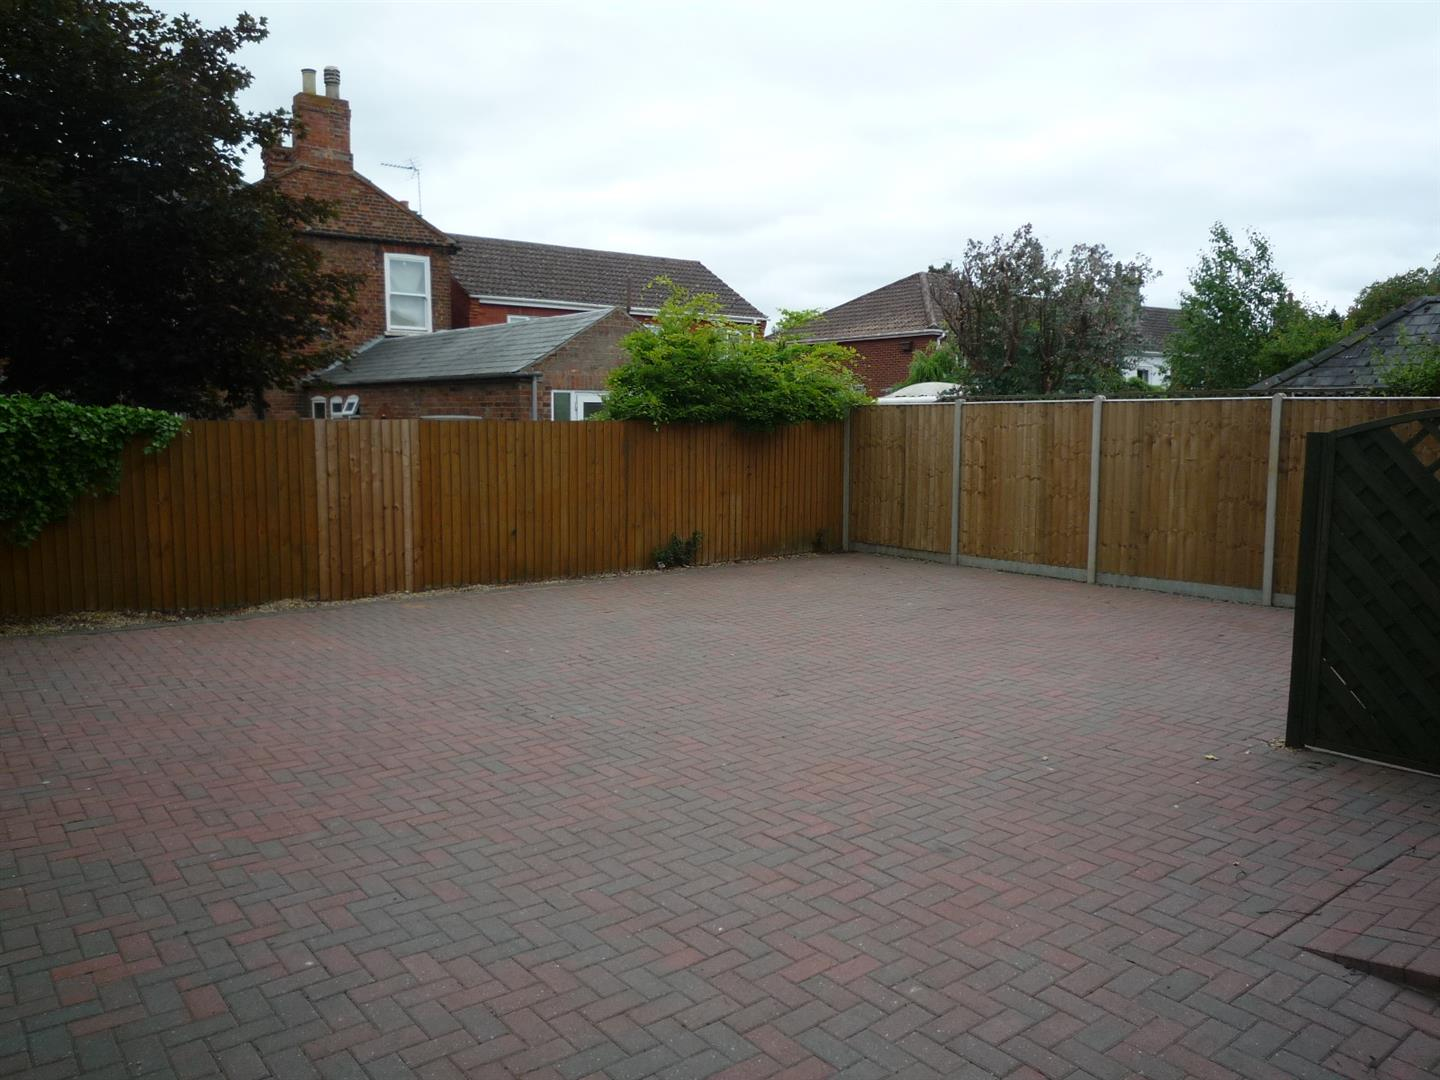 3 bed house to rent in Holbeach Spalding, PE12 7DR 6